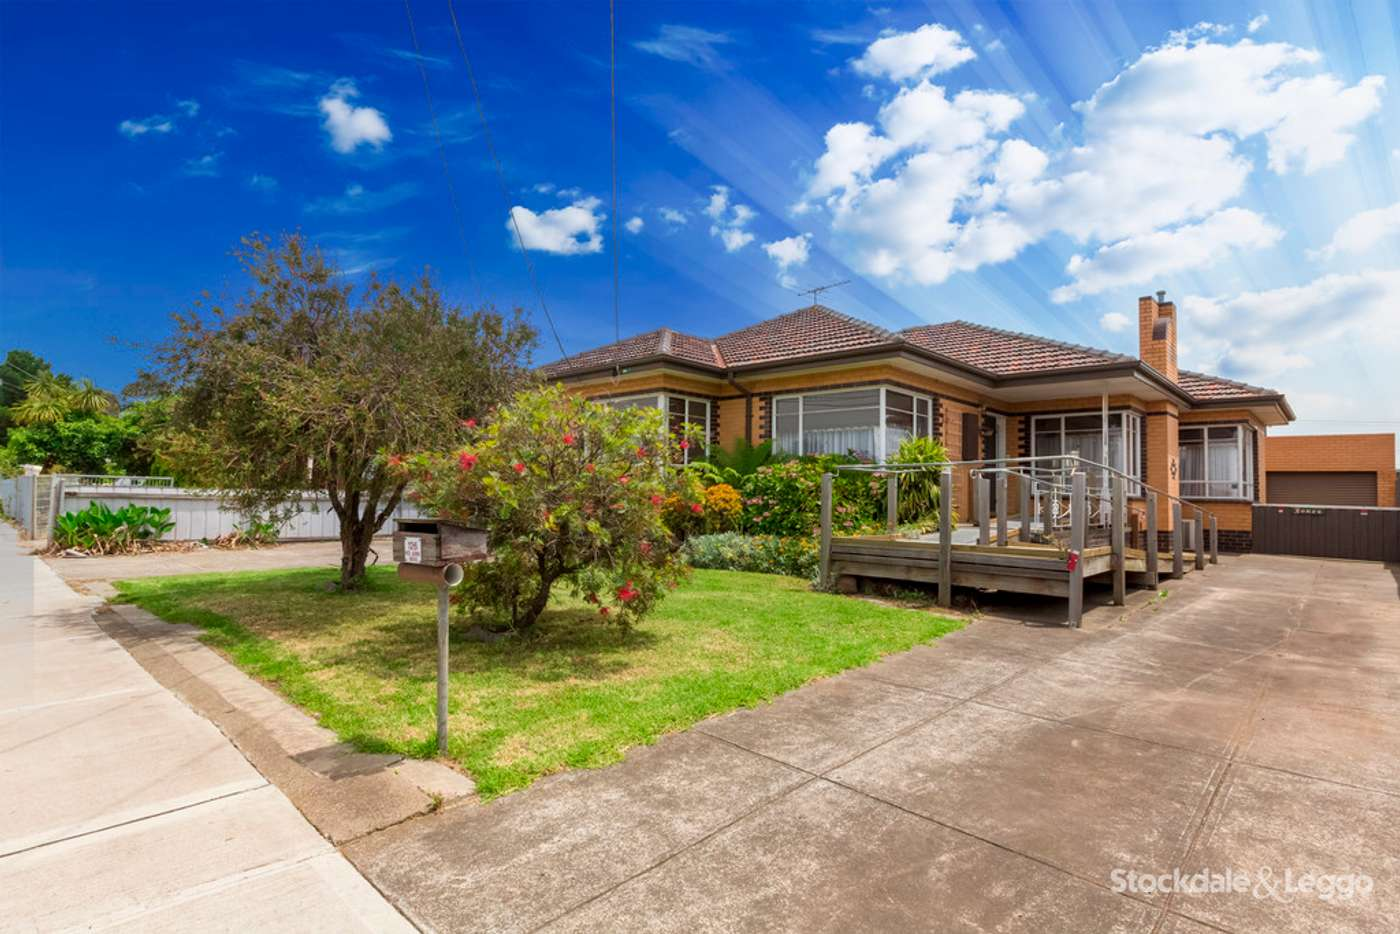 Main view of Homely house listing, 126 Forrest st, Ardeer VIC 3022